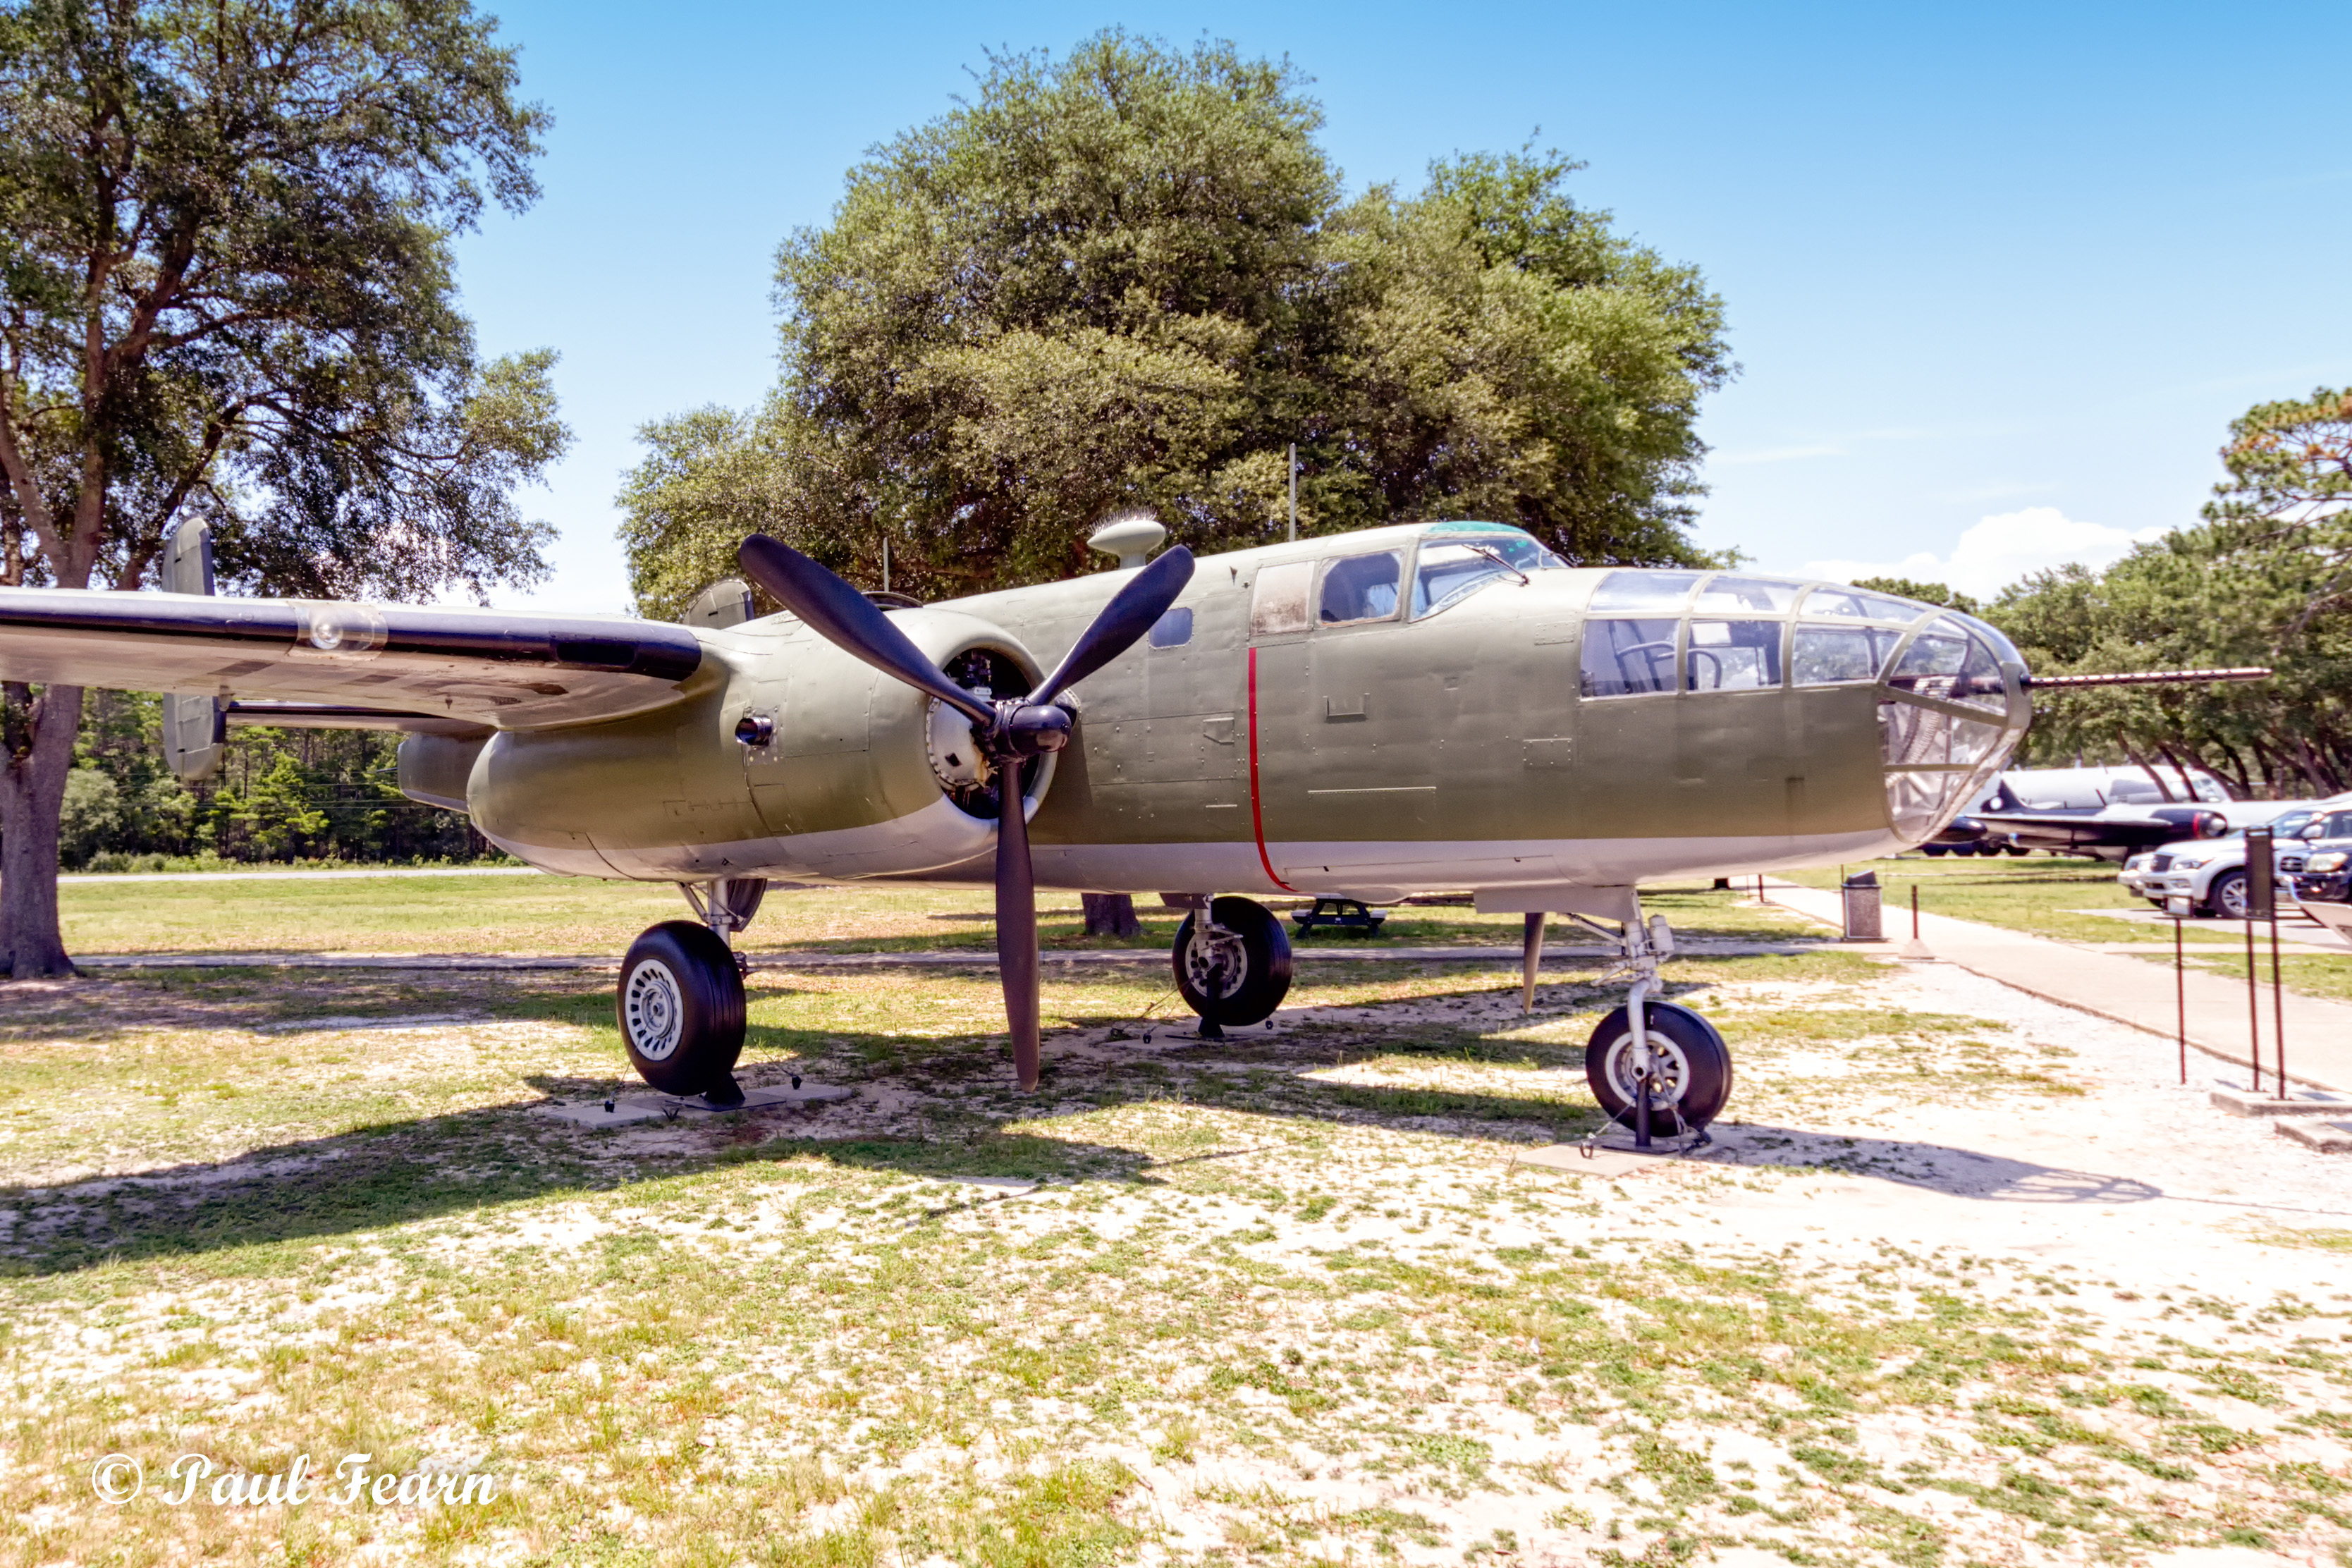 pjf aviation photography north american tb 25j 25 nc mitchell 44 30854 the last b 25 in the usaf inventory marked as b 25b 40 2344 gen jimmy doolittle s aircraft on the tokyo